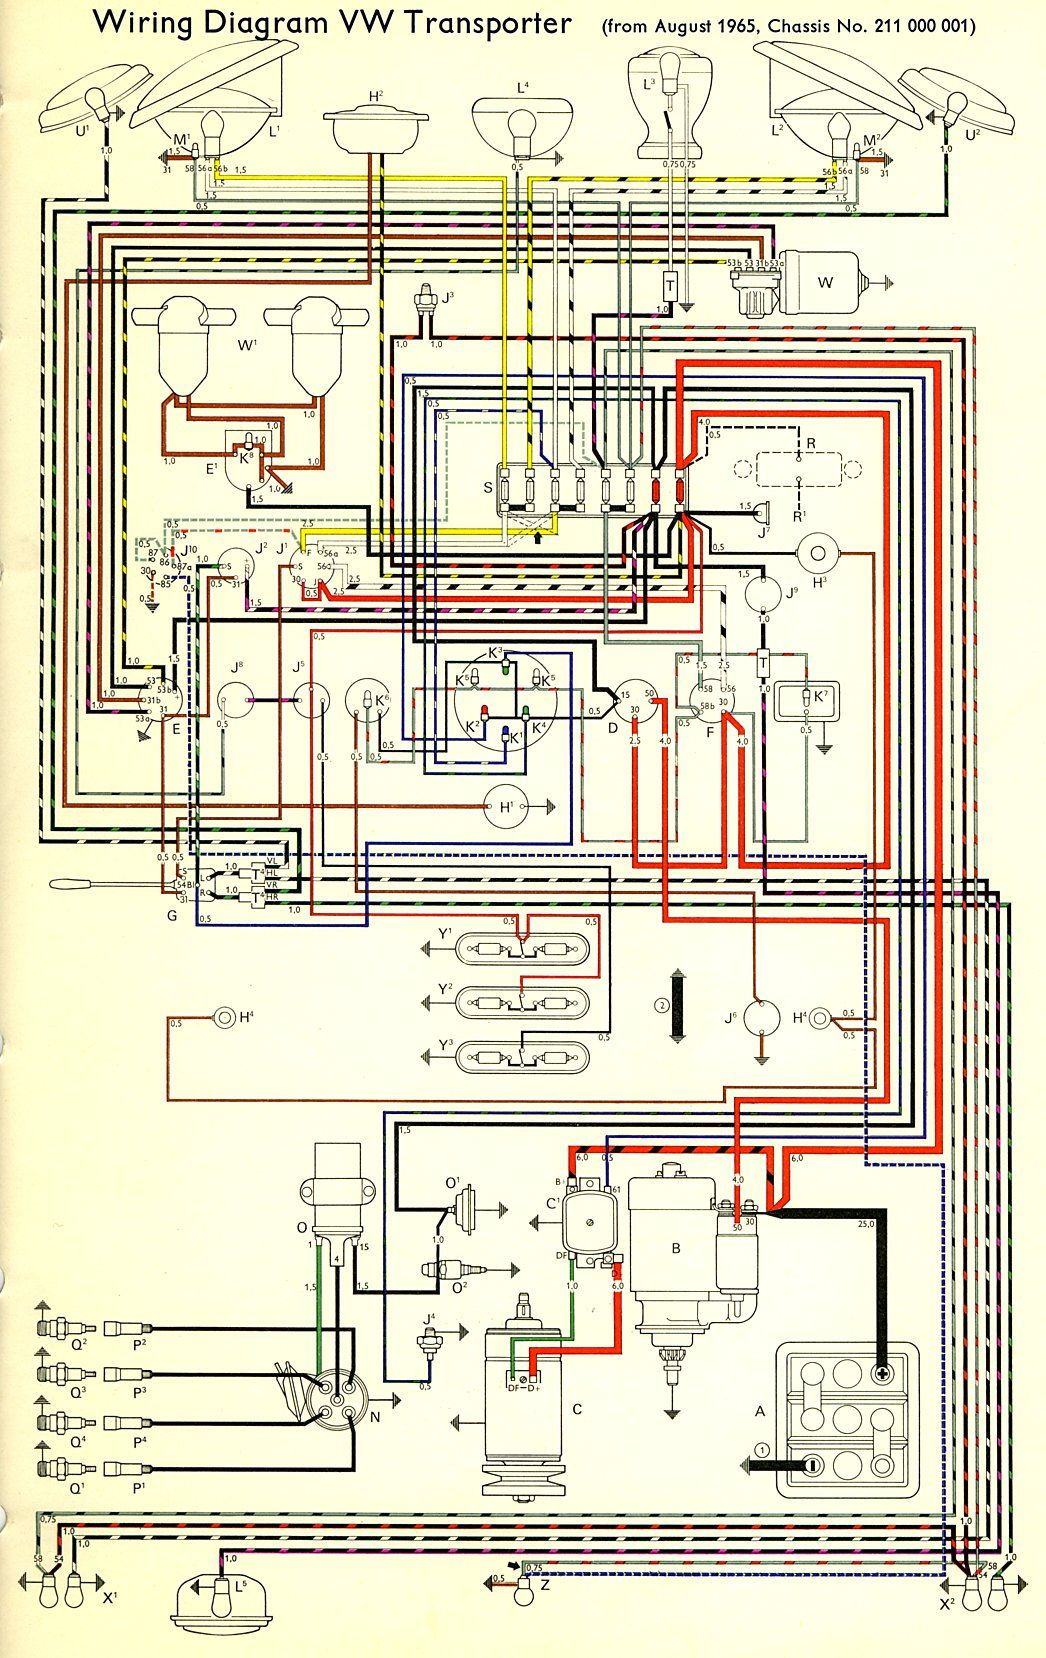 bus wiring diagrams wiring diagrams wnimid bus wiring diagrams wiring diagrams mon thomas c2 school bus [ 1046 x 1658 Pixel ]